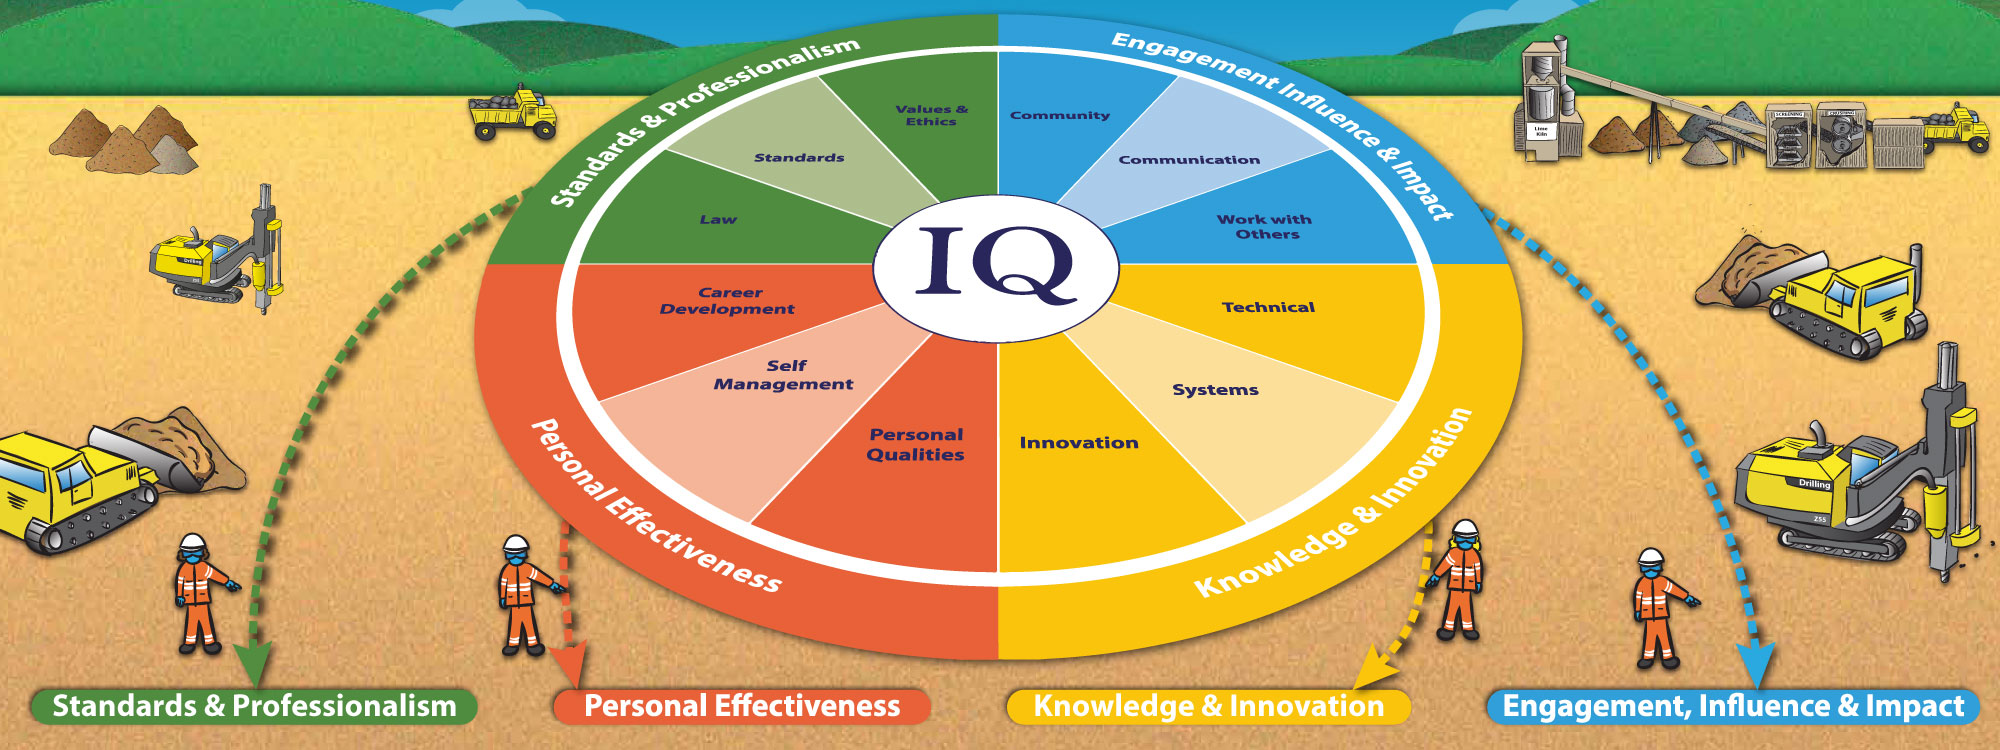 How IQ supports career development